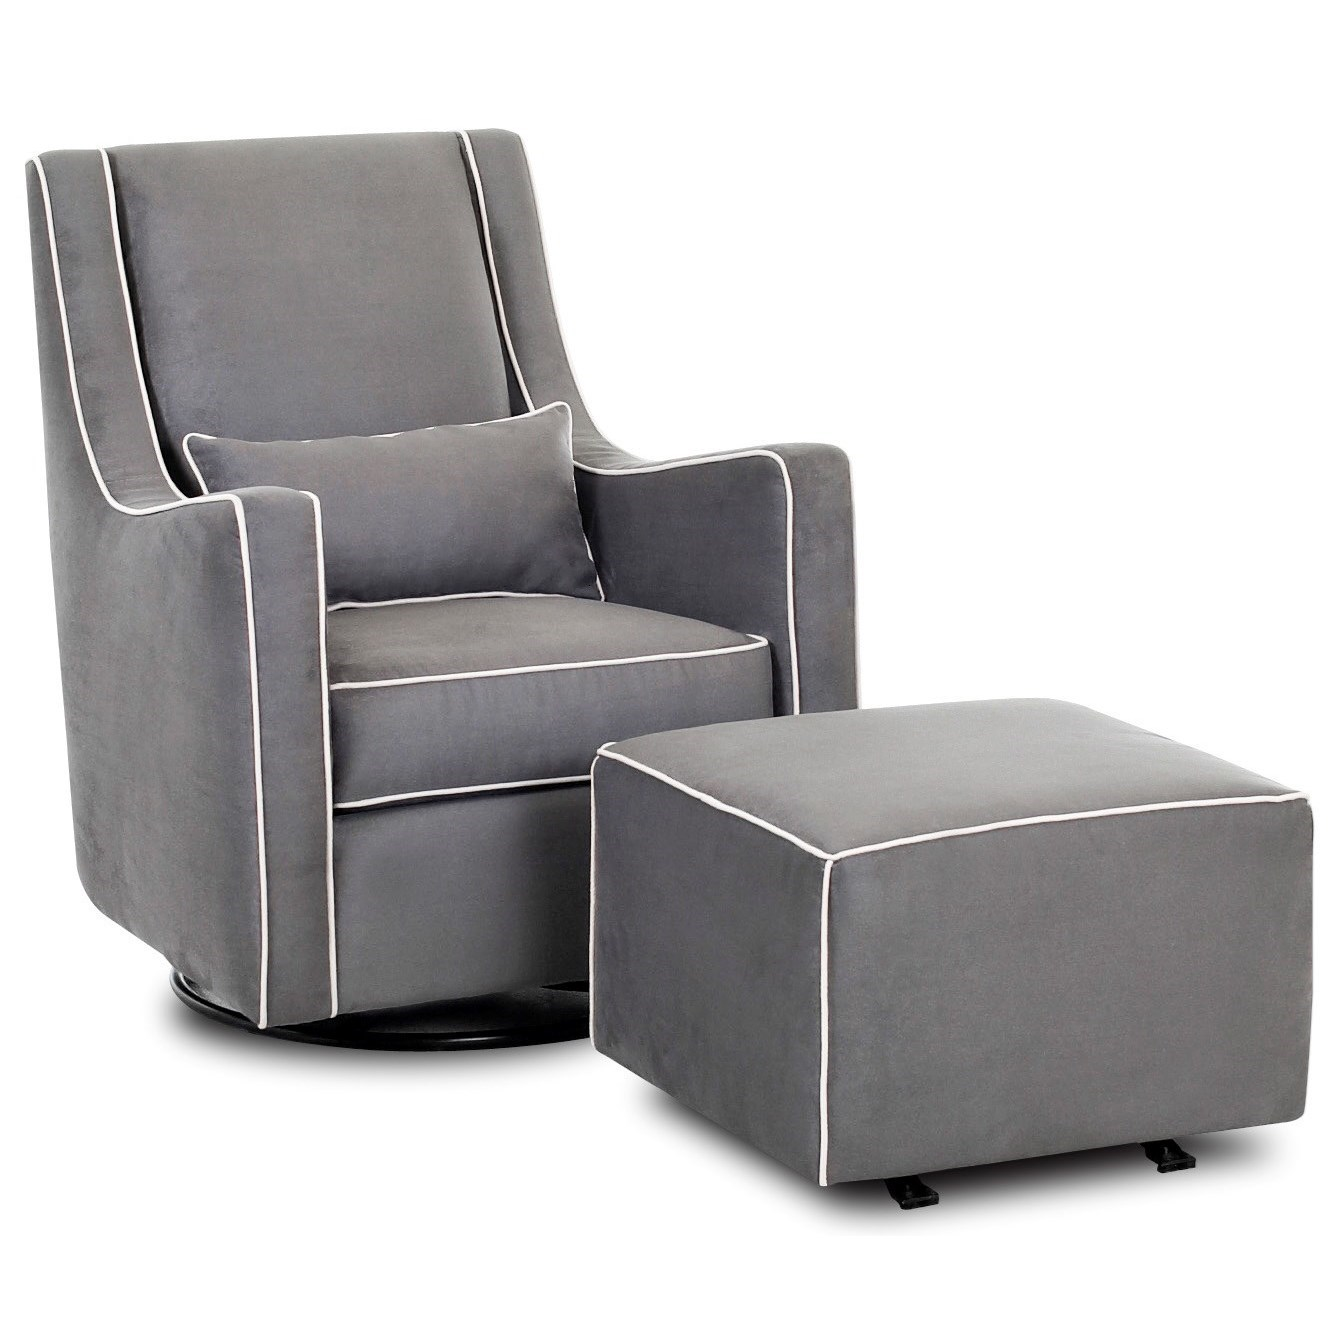 Klaussner Chairs and Accents Lacey Swivel Gliding Chair and Ottoman - Item Number: K31390 SWGL+K31390 GLDOT